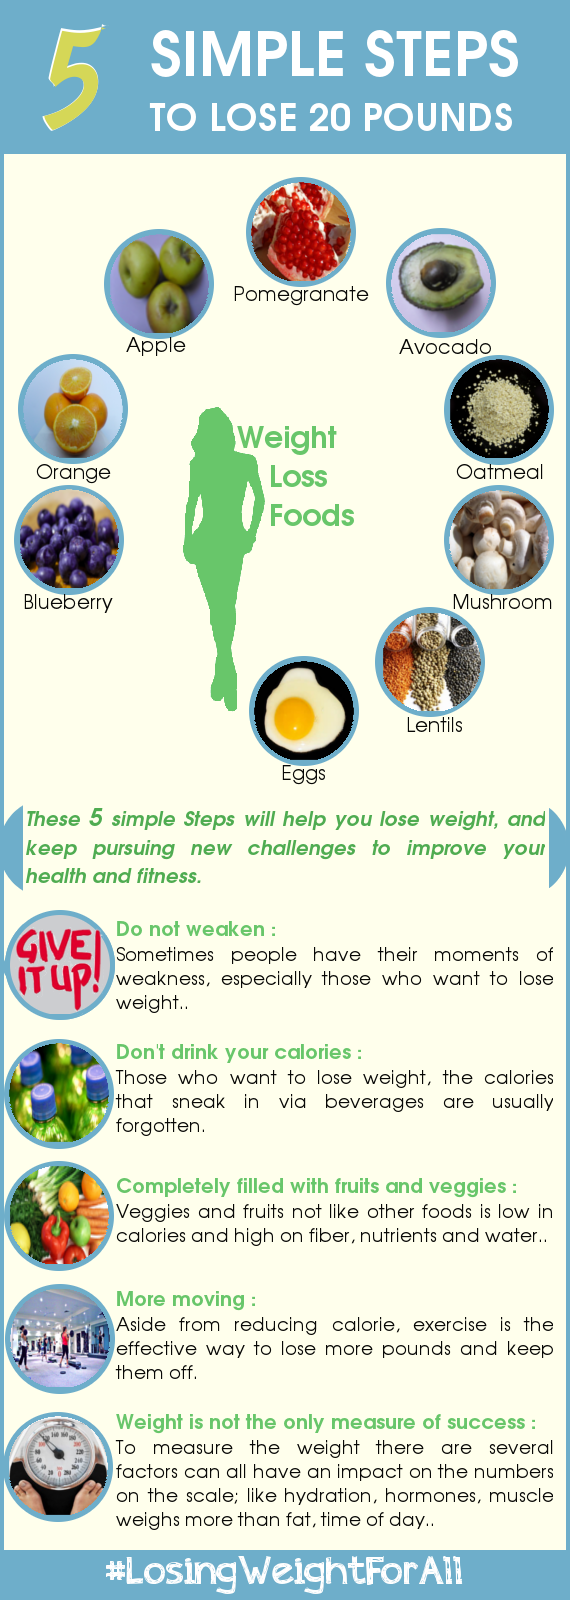 5 Simple Steps to Lose 20 Pounds infographic